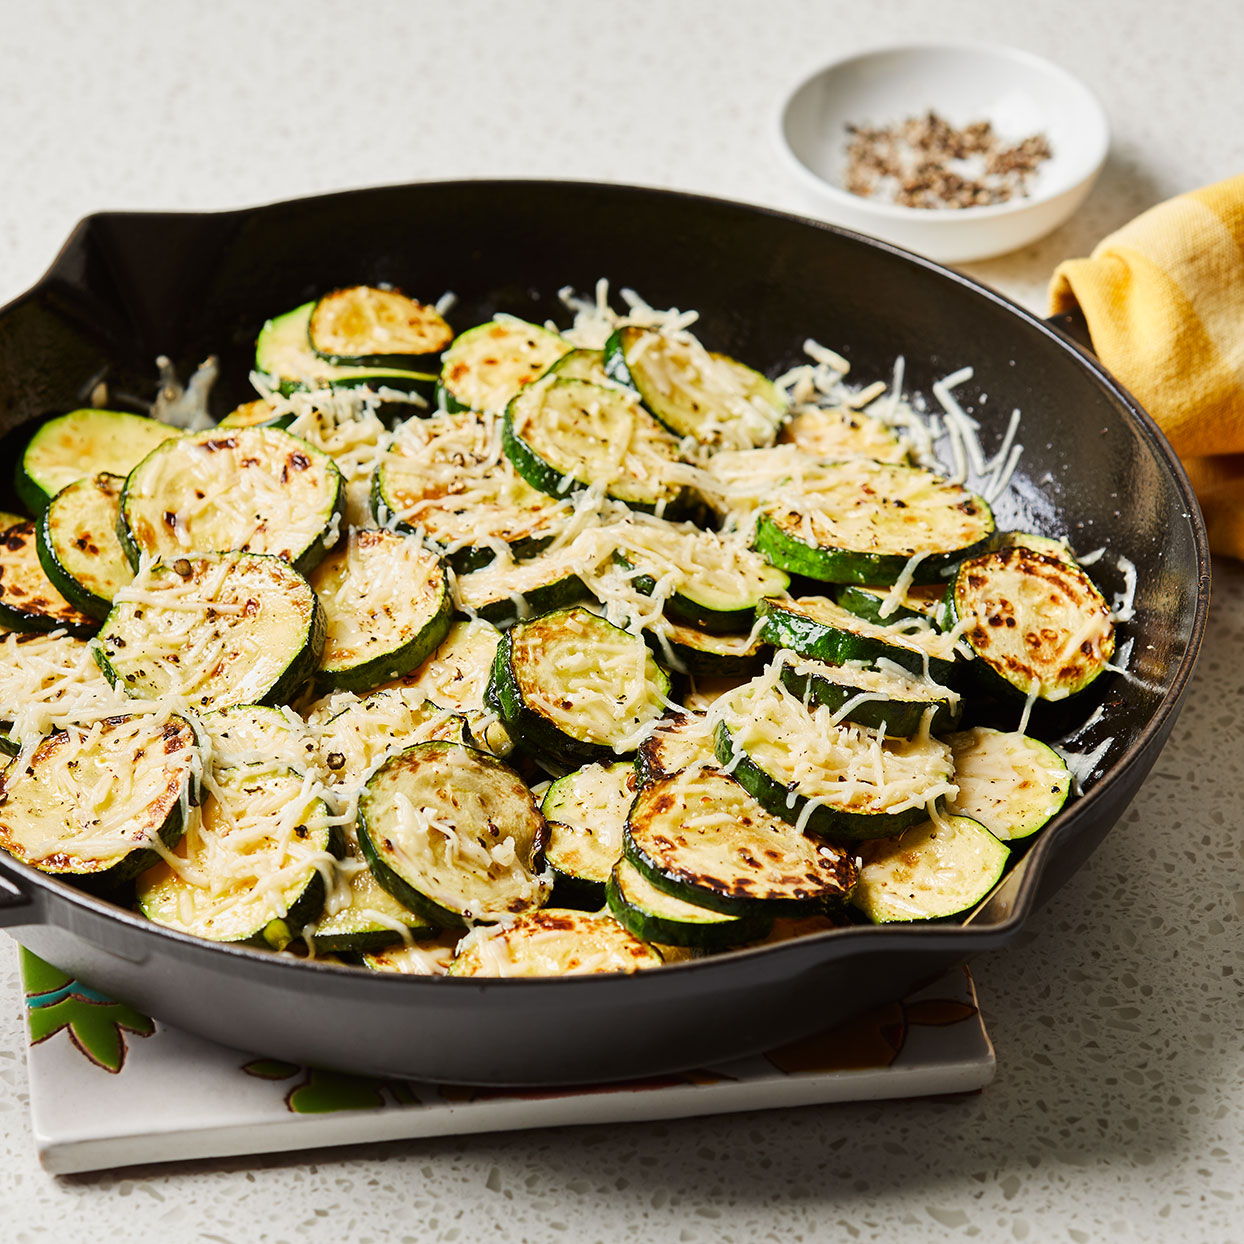 Mary's Zucchini with Parmesan Trusted Brands